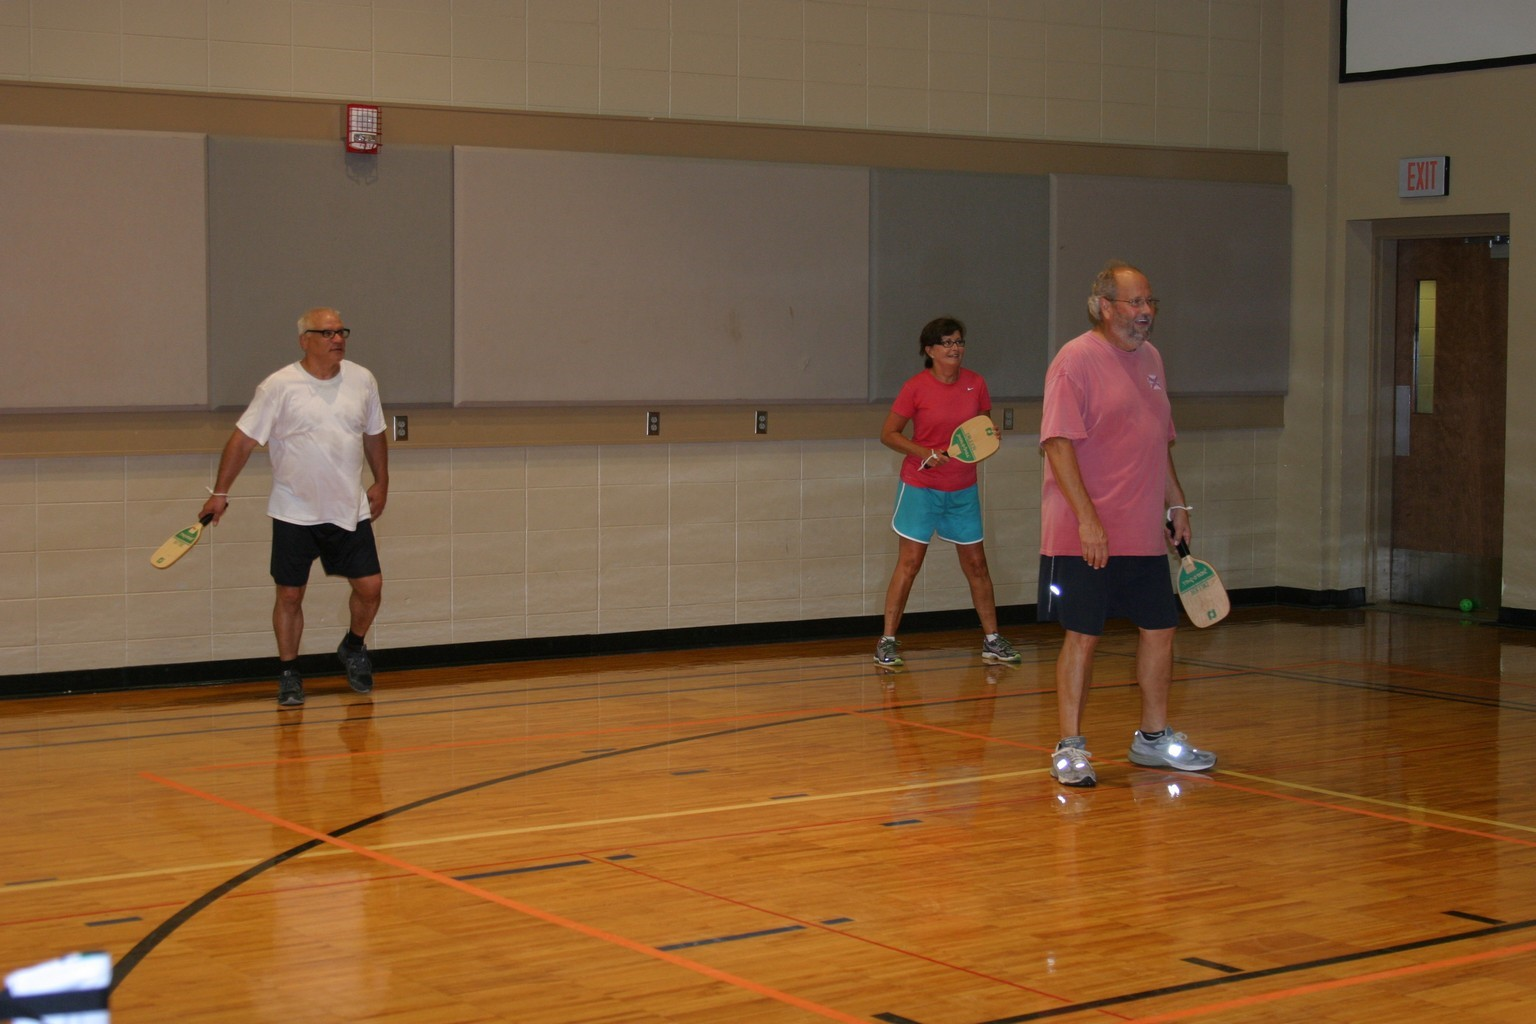 trussville pickleball, birmingham pickleball, pickleball, family pickleball, first baptist church trussville, trussville, alabama